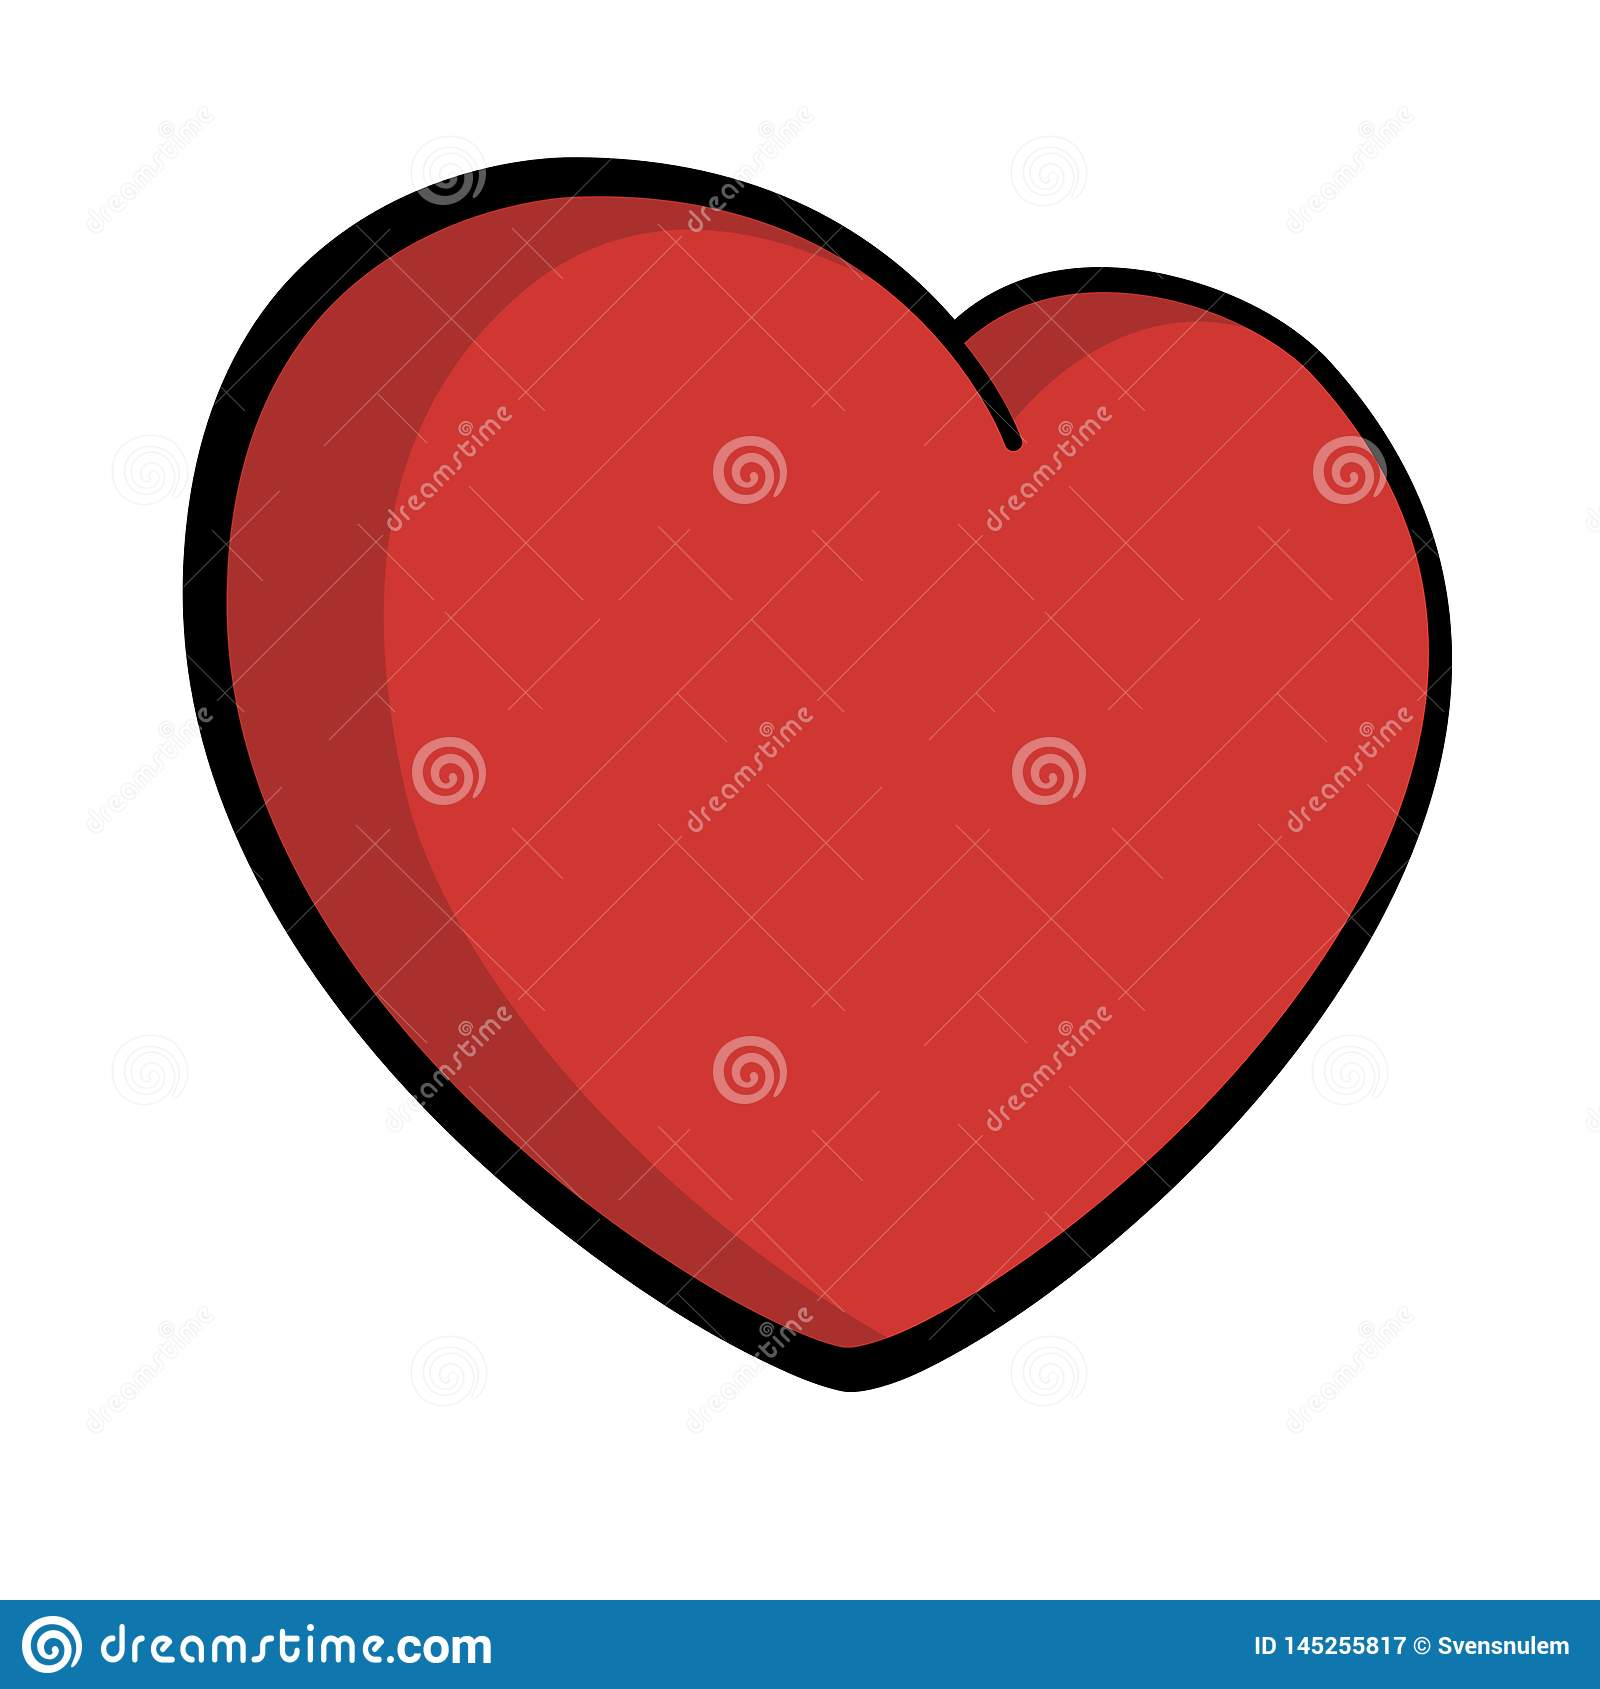 Heart Icon Big red black symbol love outlined shaded Valentine`s day Vector